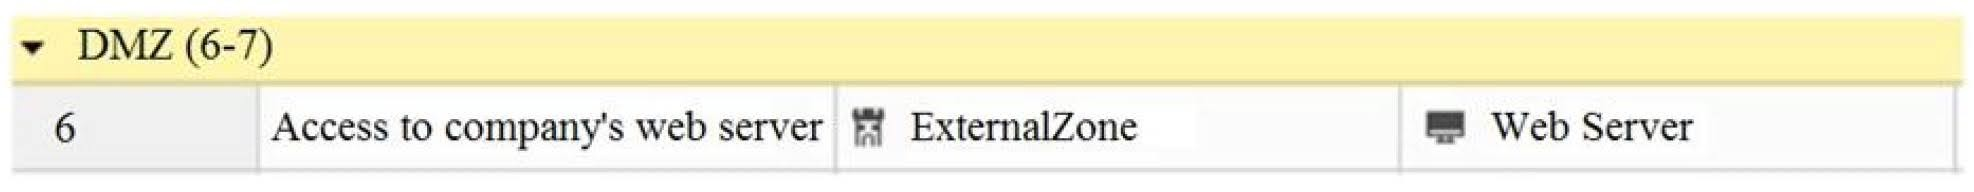 What does ExternalZone represent in the presented rule?